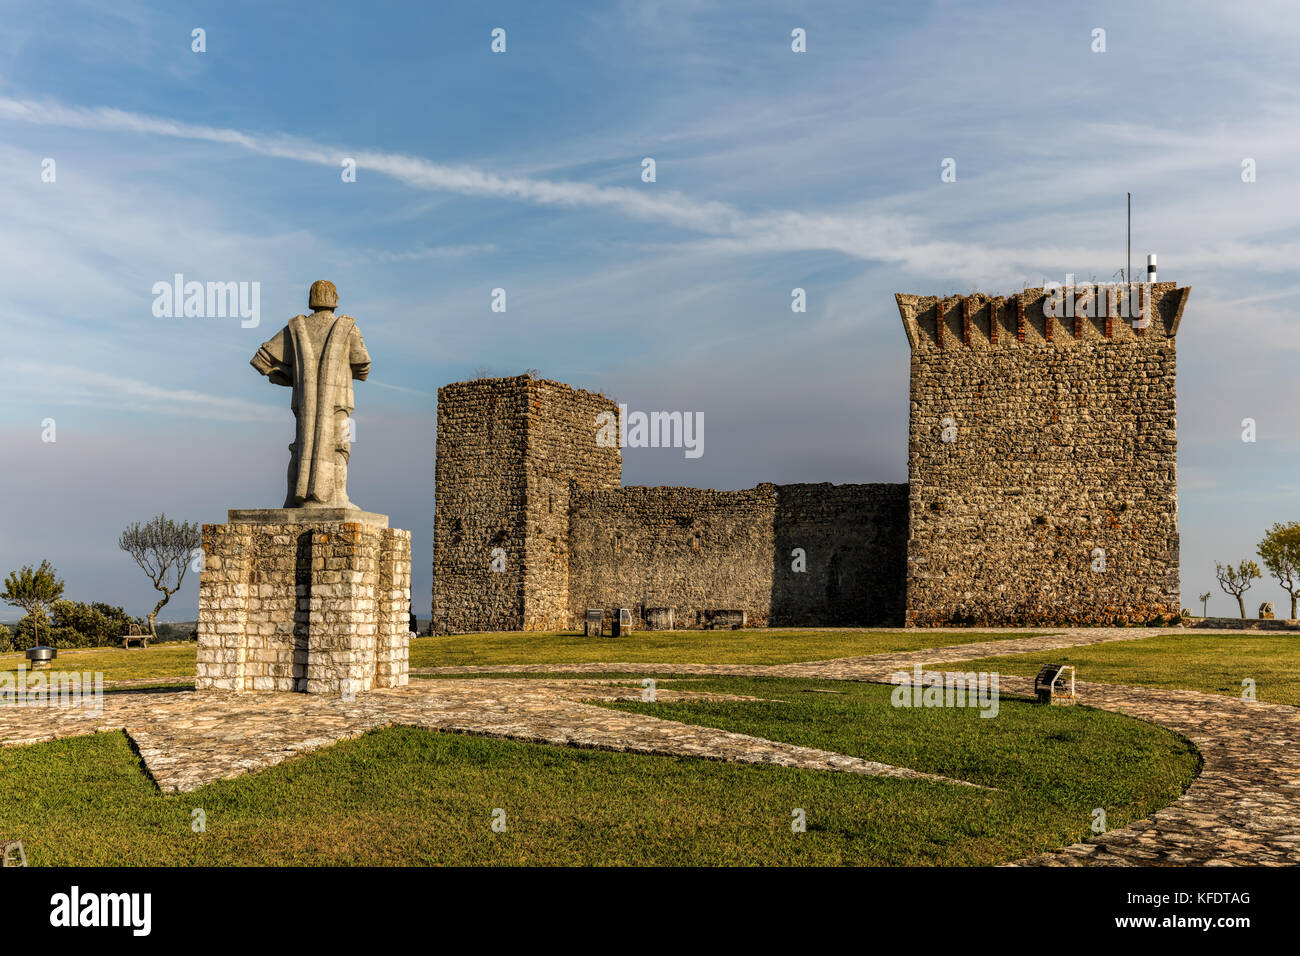 Ourem, Portugal, August 12, 2017: Statue of the Commander Nuno Alvares Pereira in front of the Medieval Castle of - Stock Image